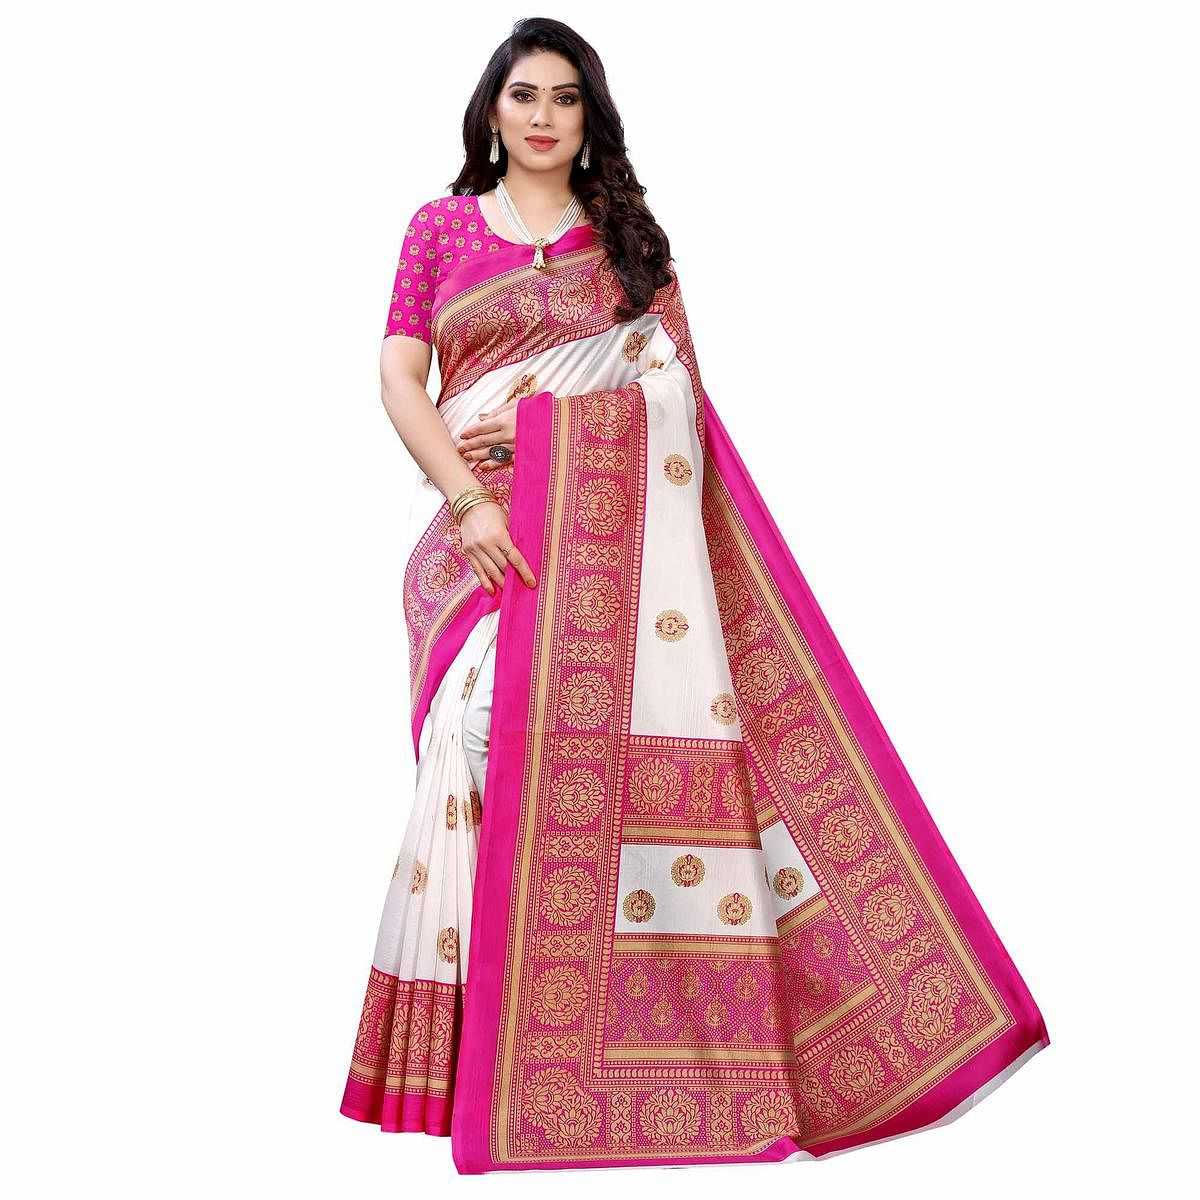 White - Pink Casual Wear Printed Art Silk Saree With Border